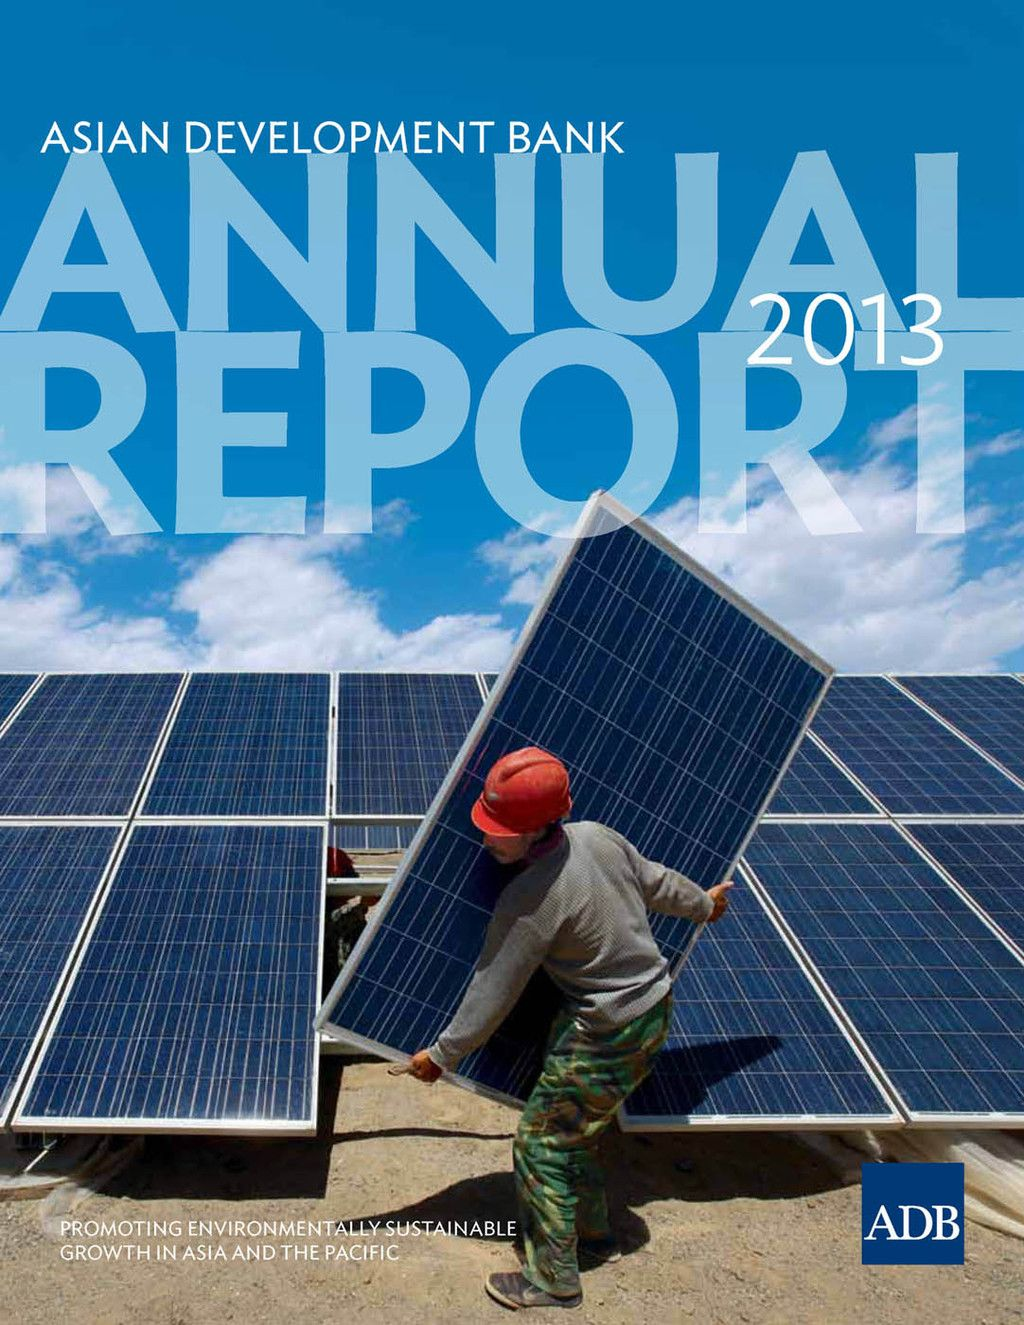 ADB Annual Report 2013 (eBook) #annualreports